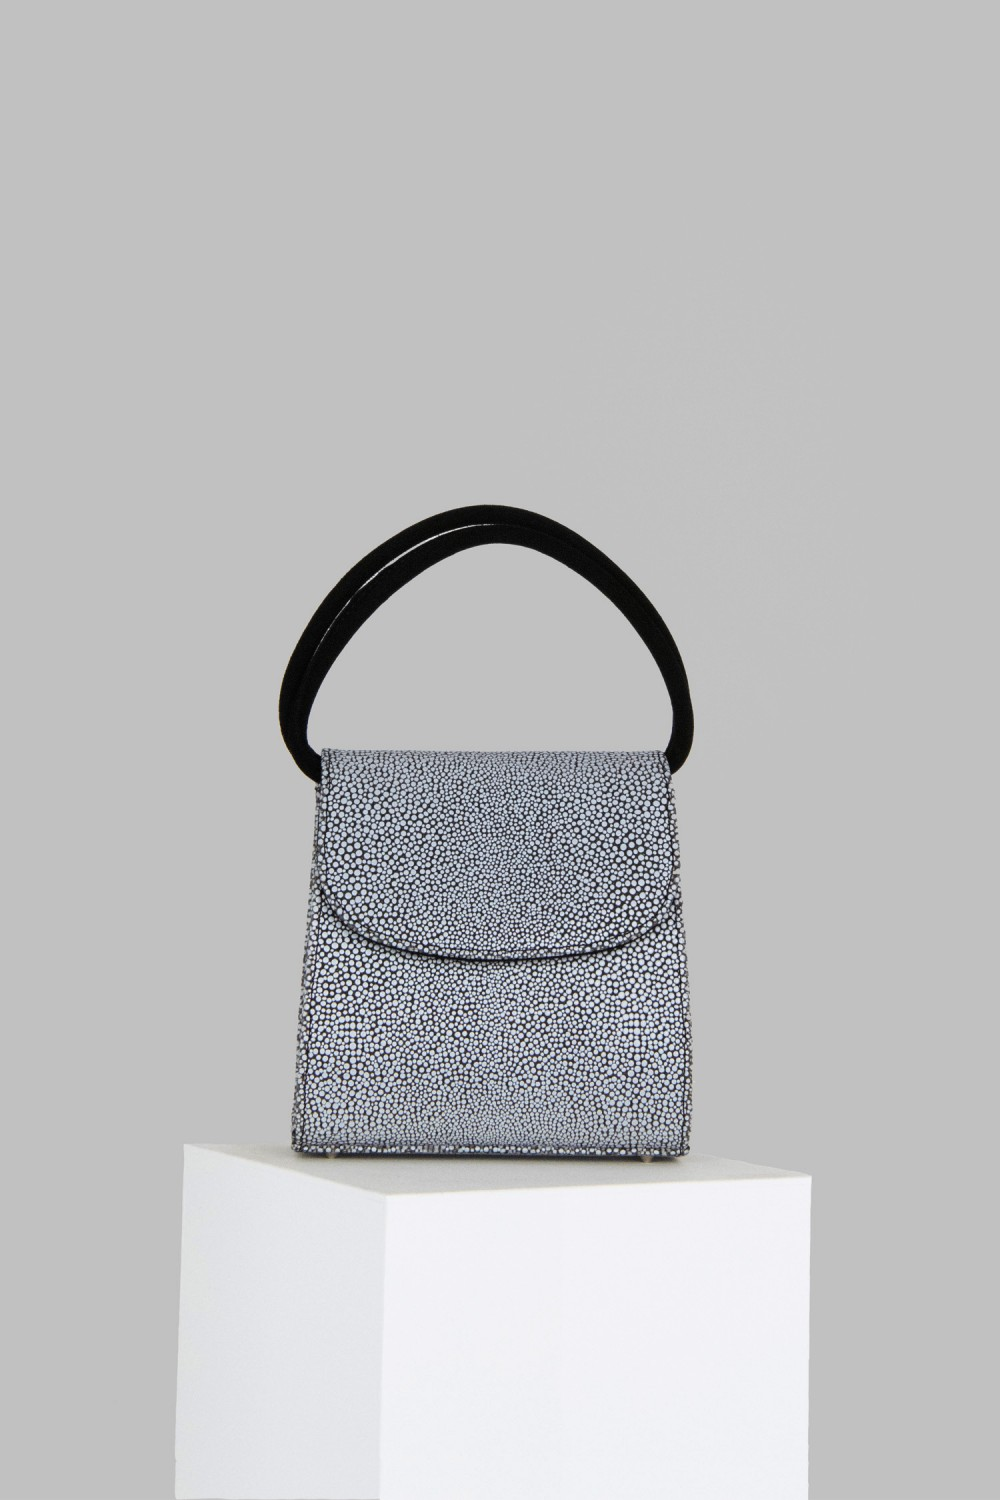 Loop Bag in Black and White Stingray Embossed Leather